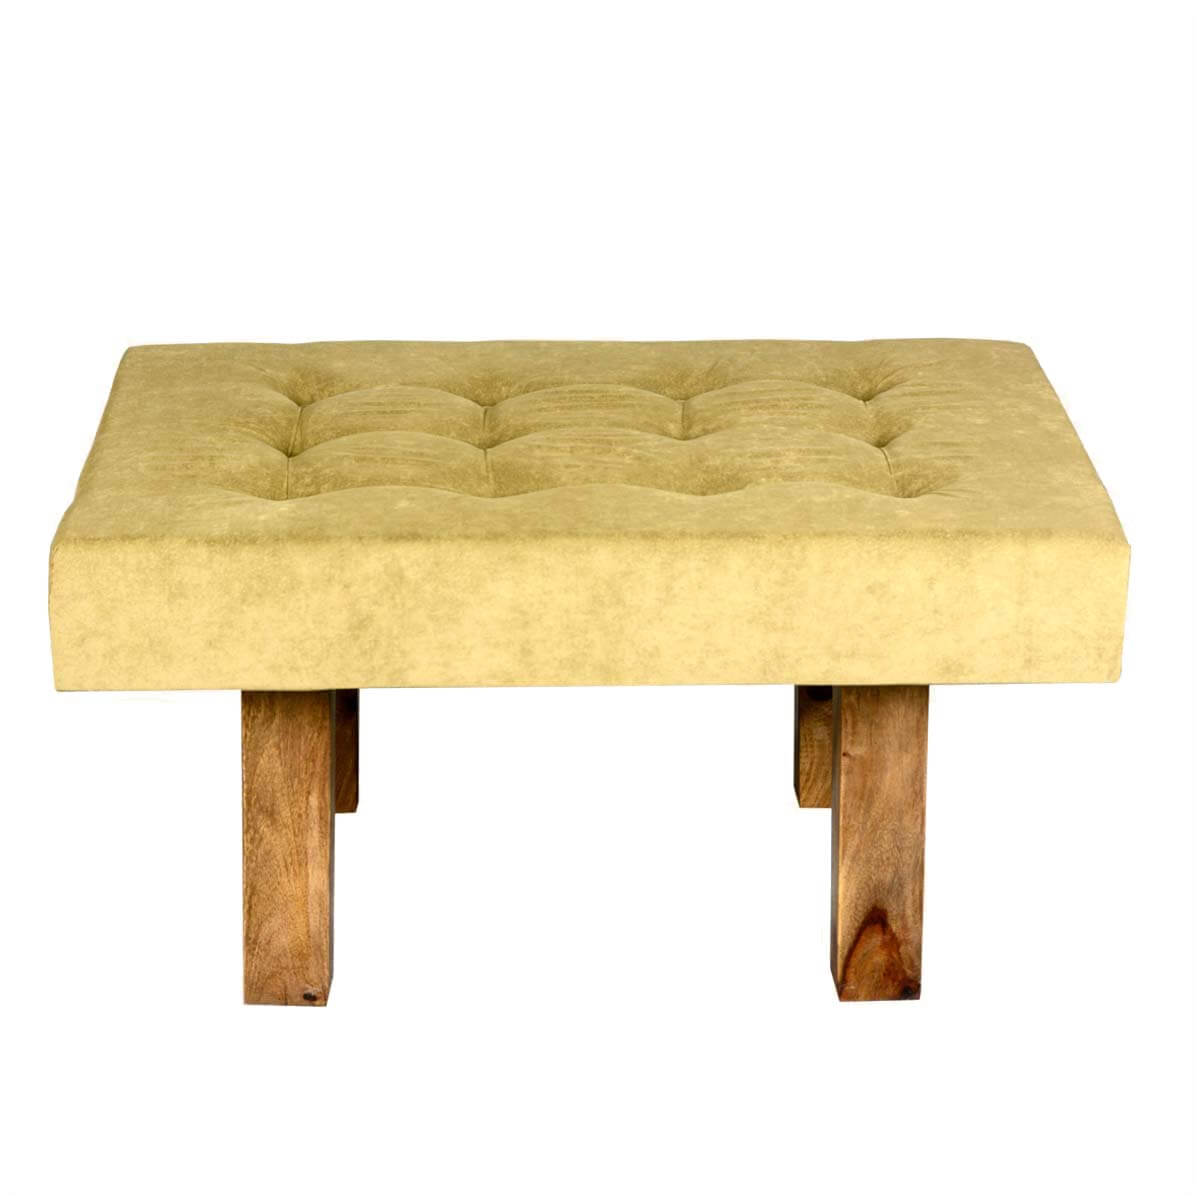 Fabric Coffee Table Contemporary Solid Wood And Tufted Fabric Coffee Table Ottoman